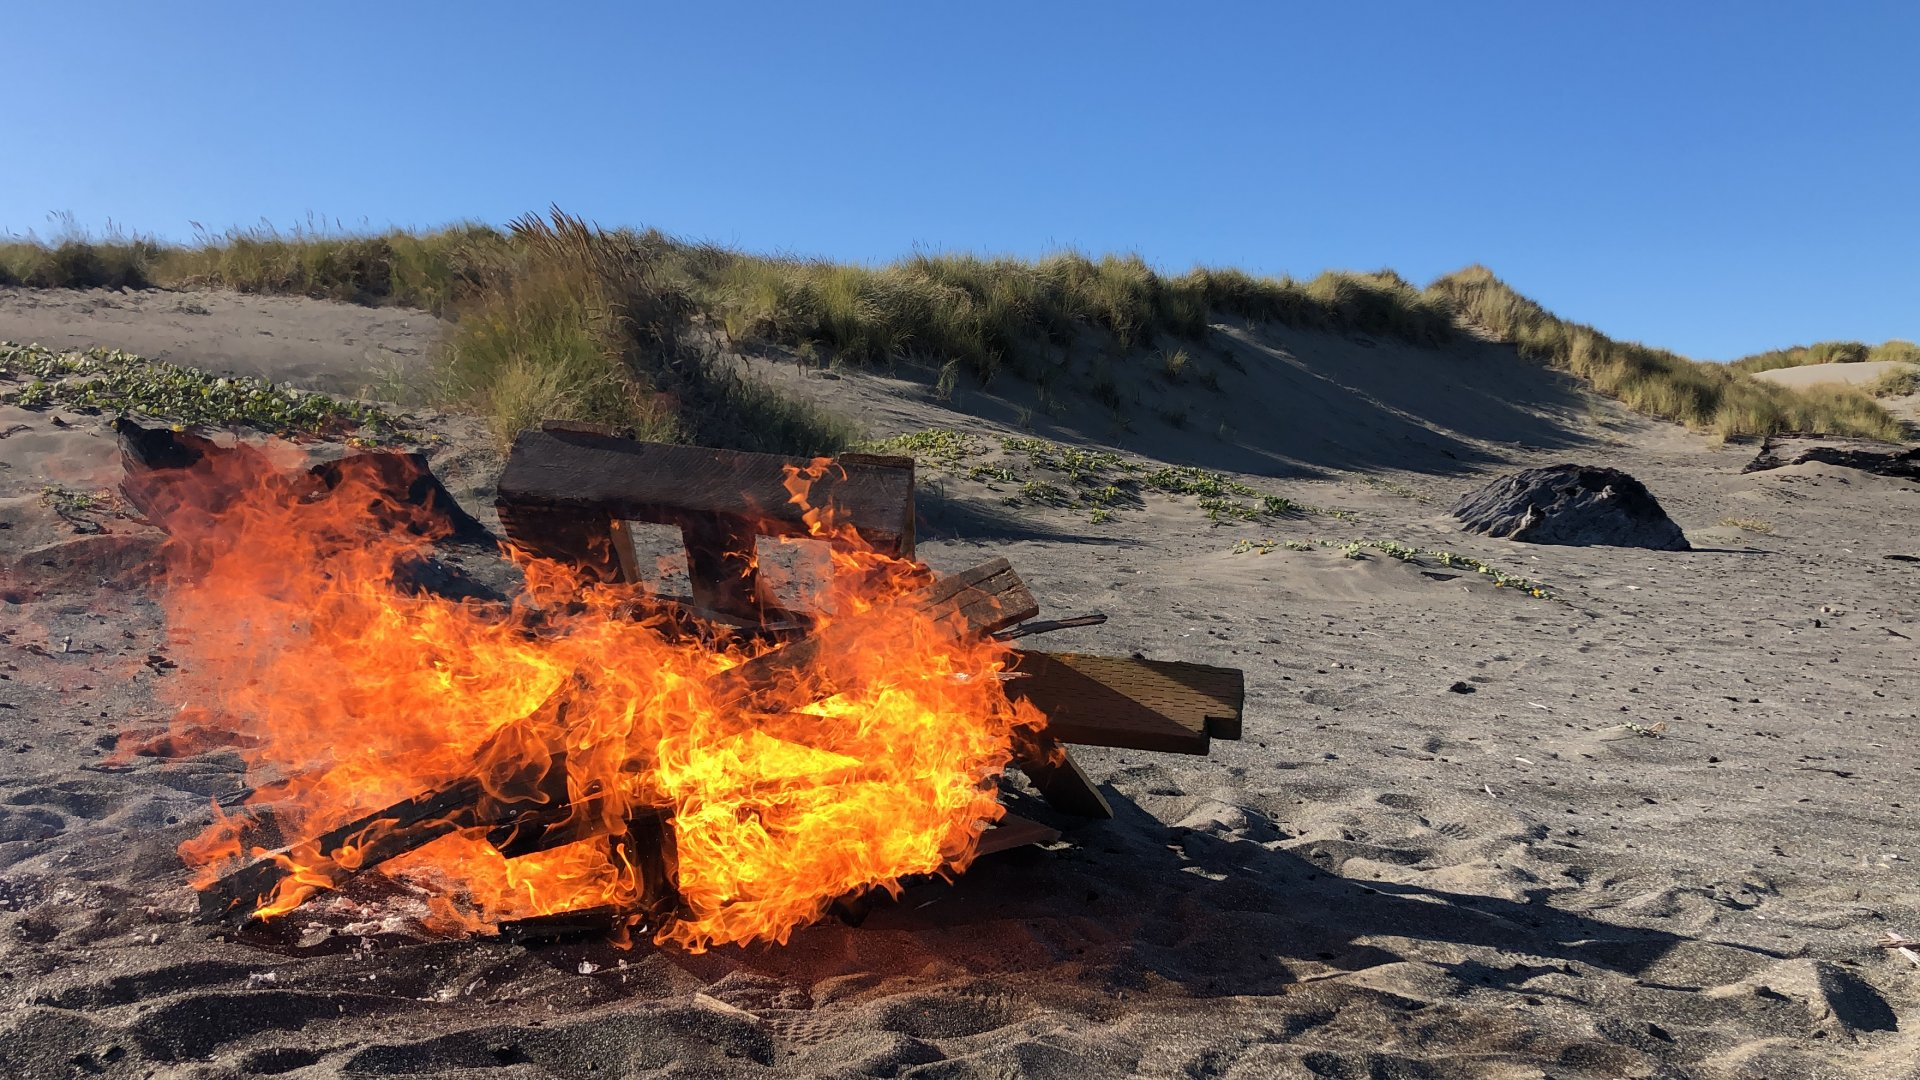 On Oct. 9 some HSU students spent their time at Samoa Beach, keeping warm by a small bonfire. Fire is just one of the heat source alternatives. | Photo by Chelsea Wood